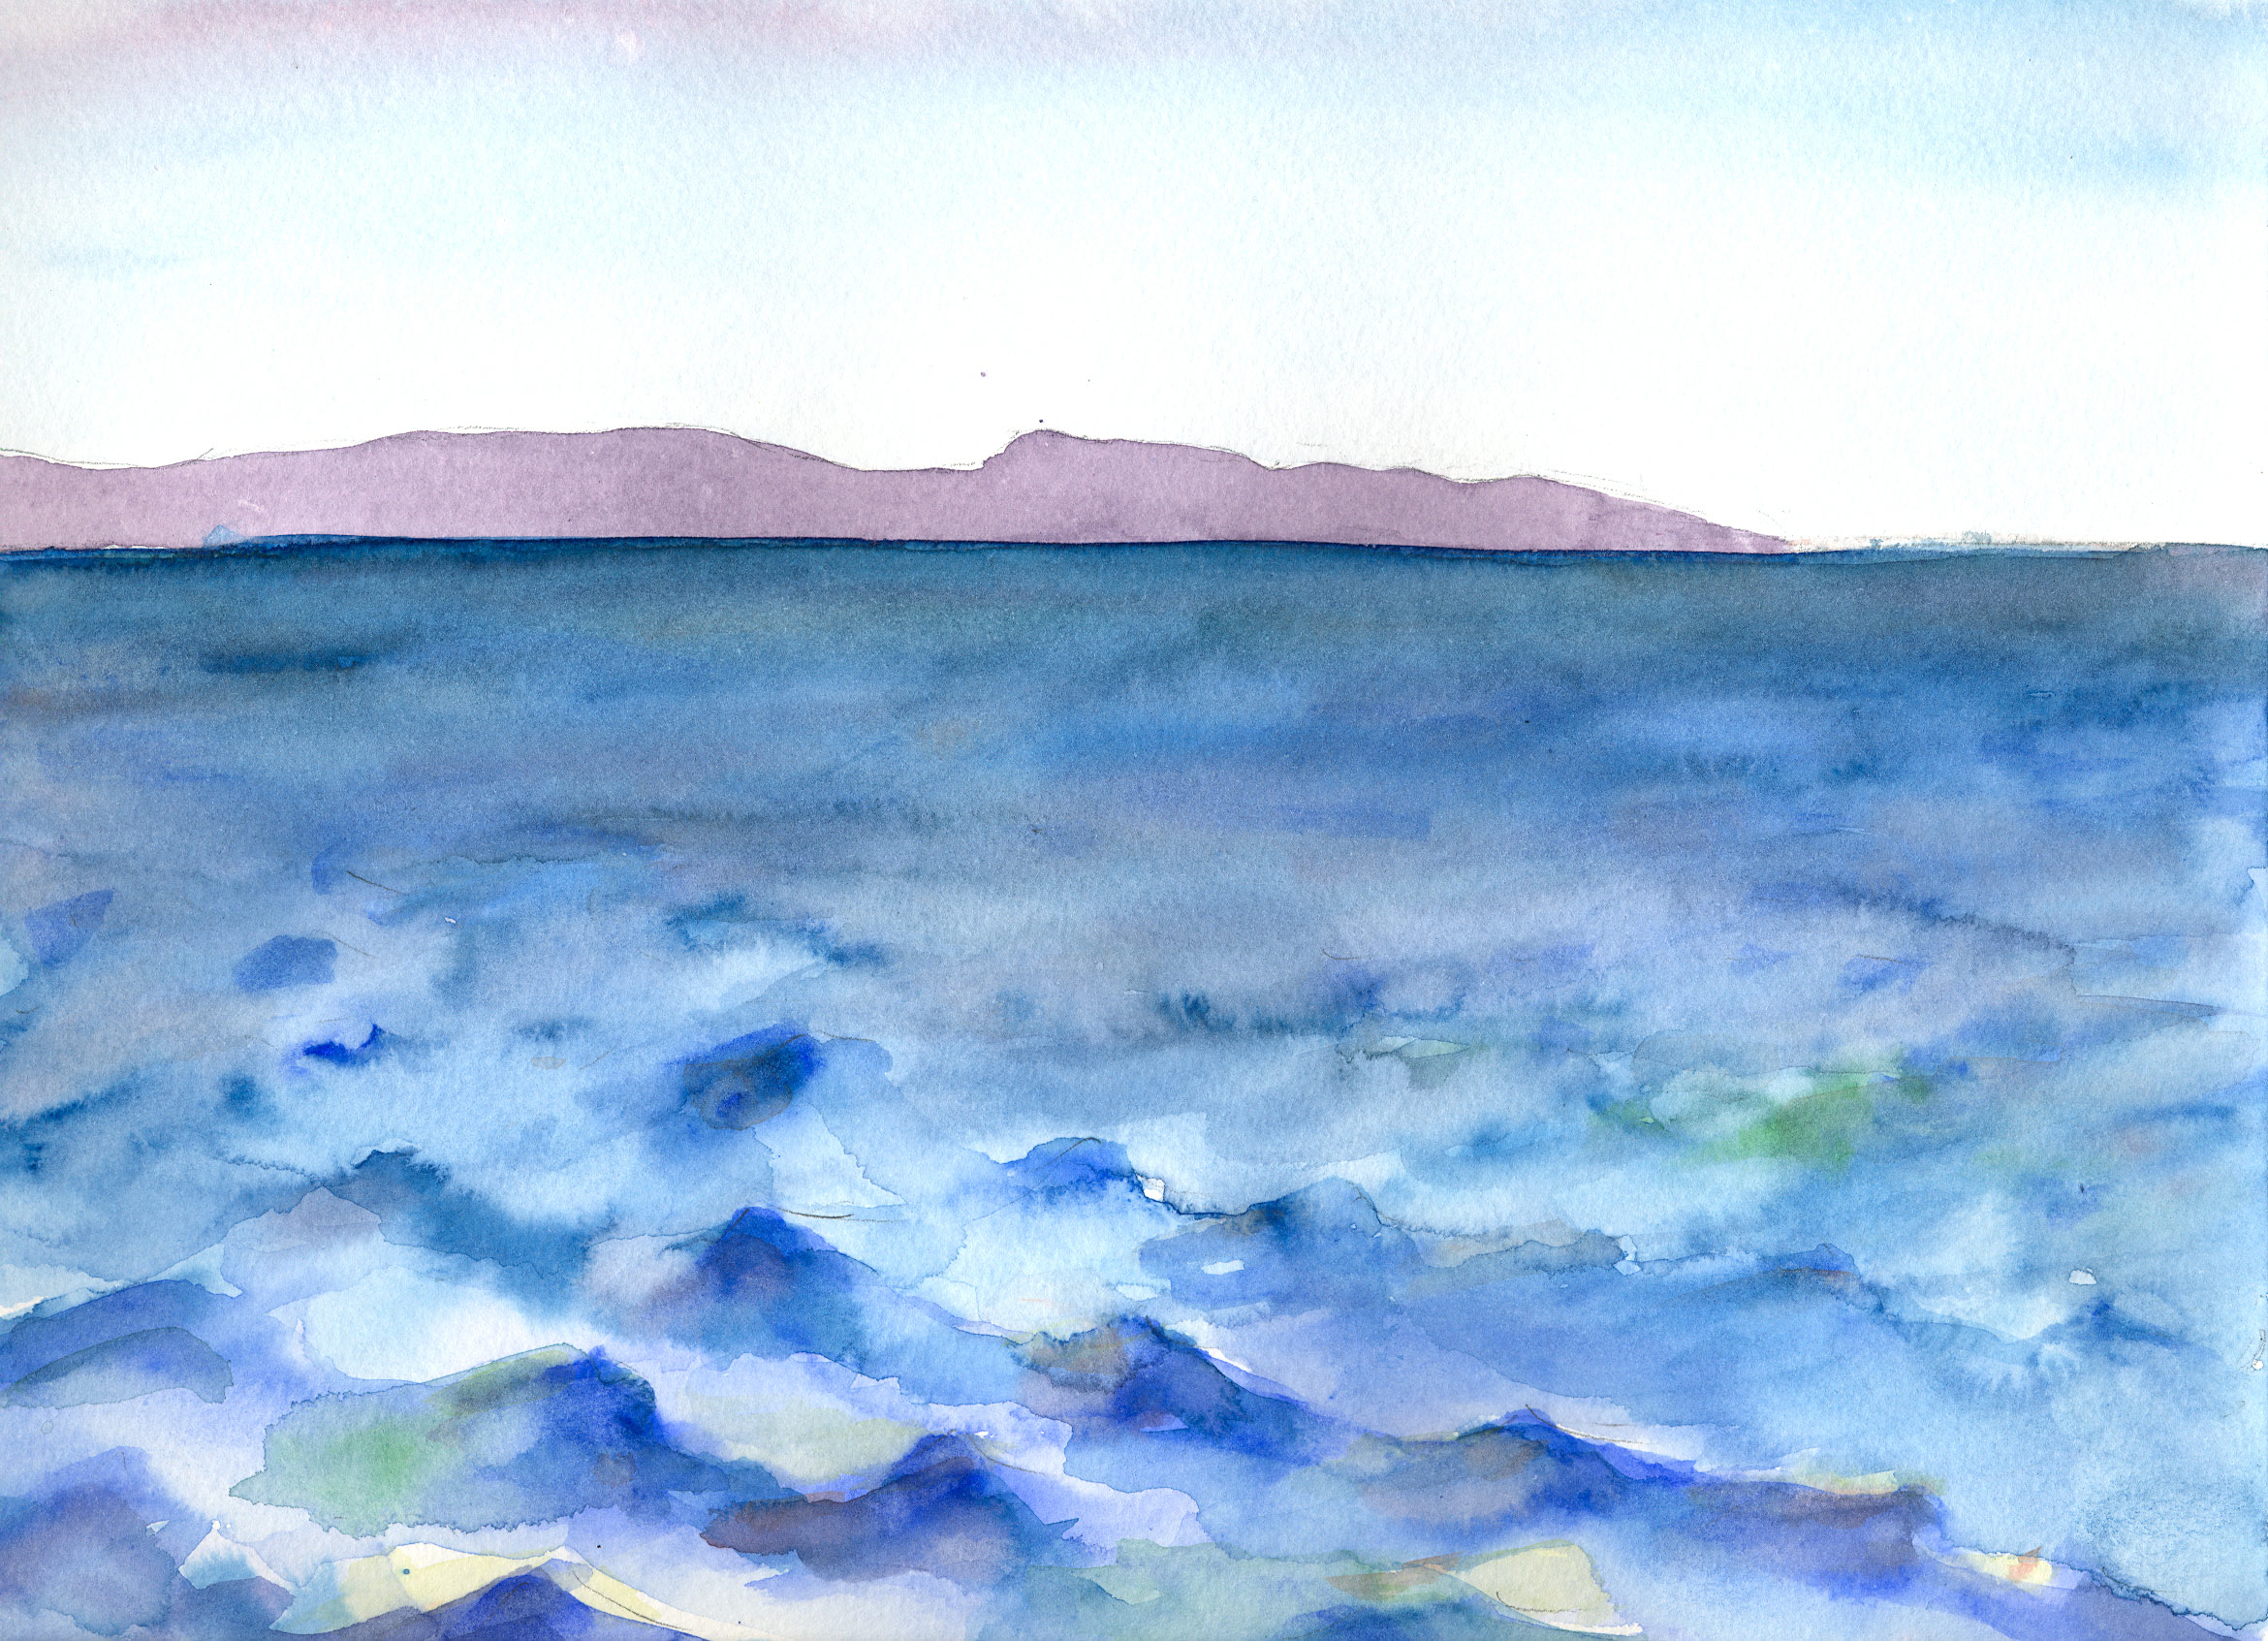 San Clemente Island Naval Weapons Testing Range | Watercolor by Hillary Mushkin | 2012